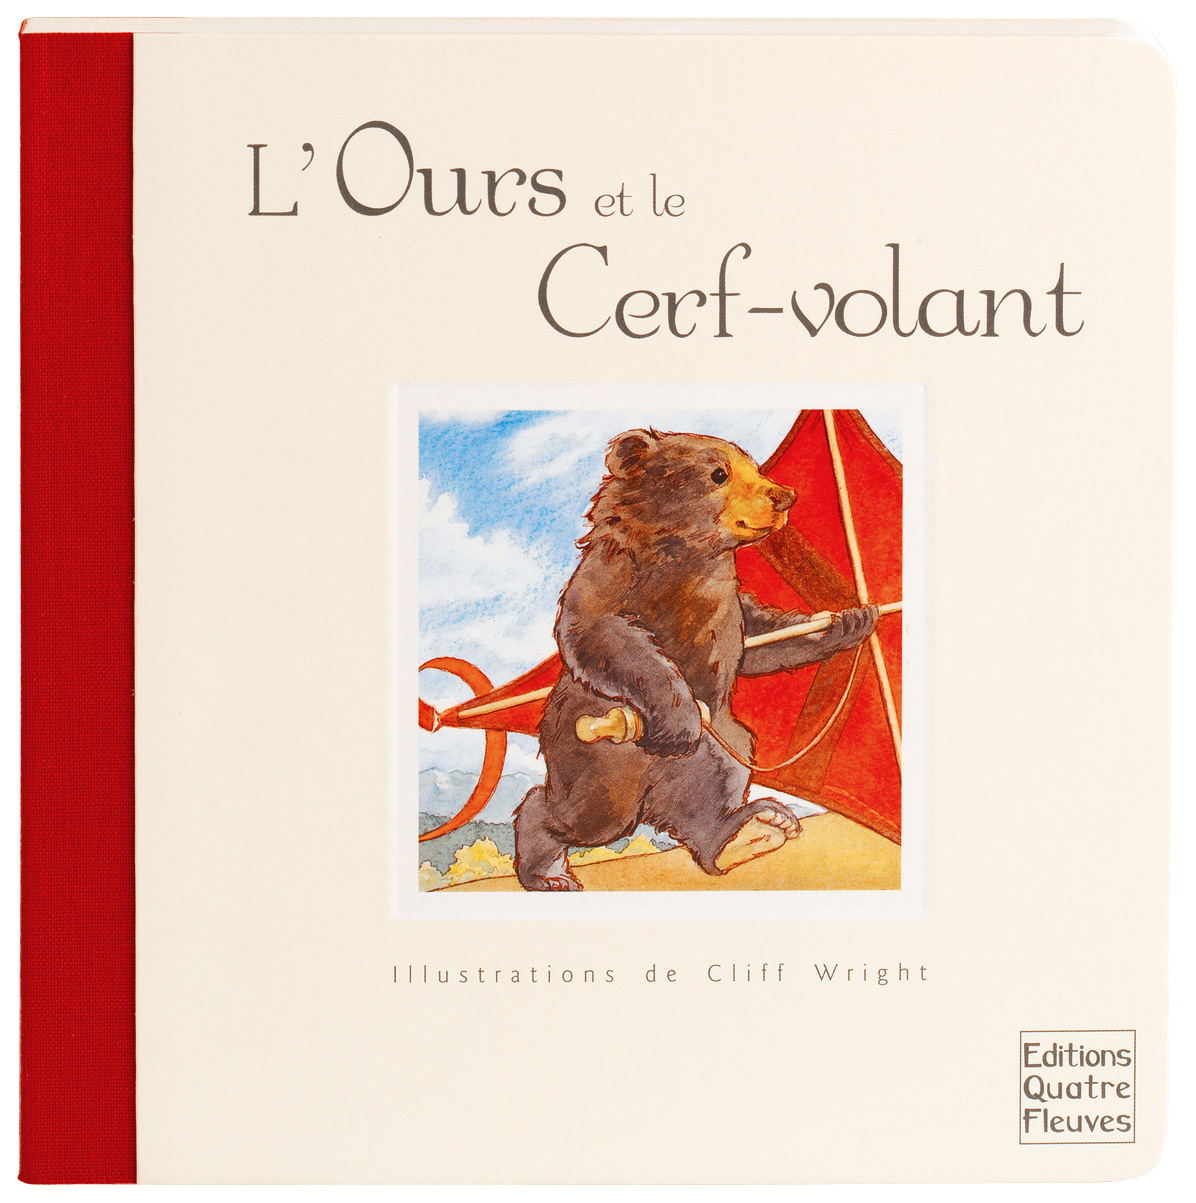 OURS CERF-VOLANT